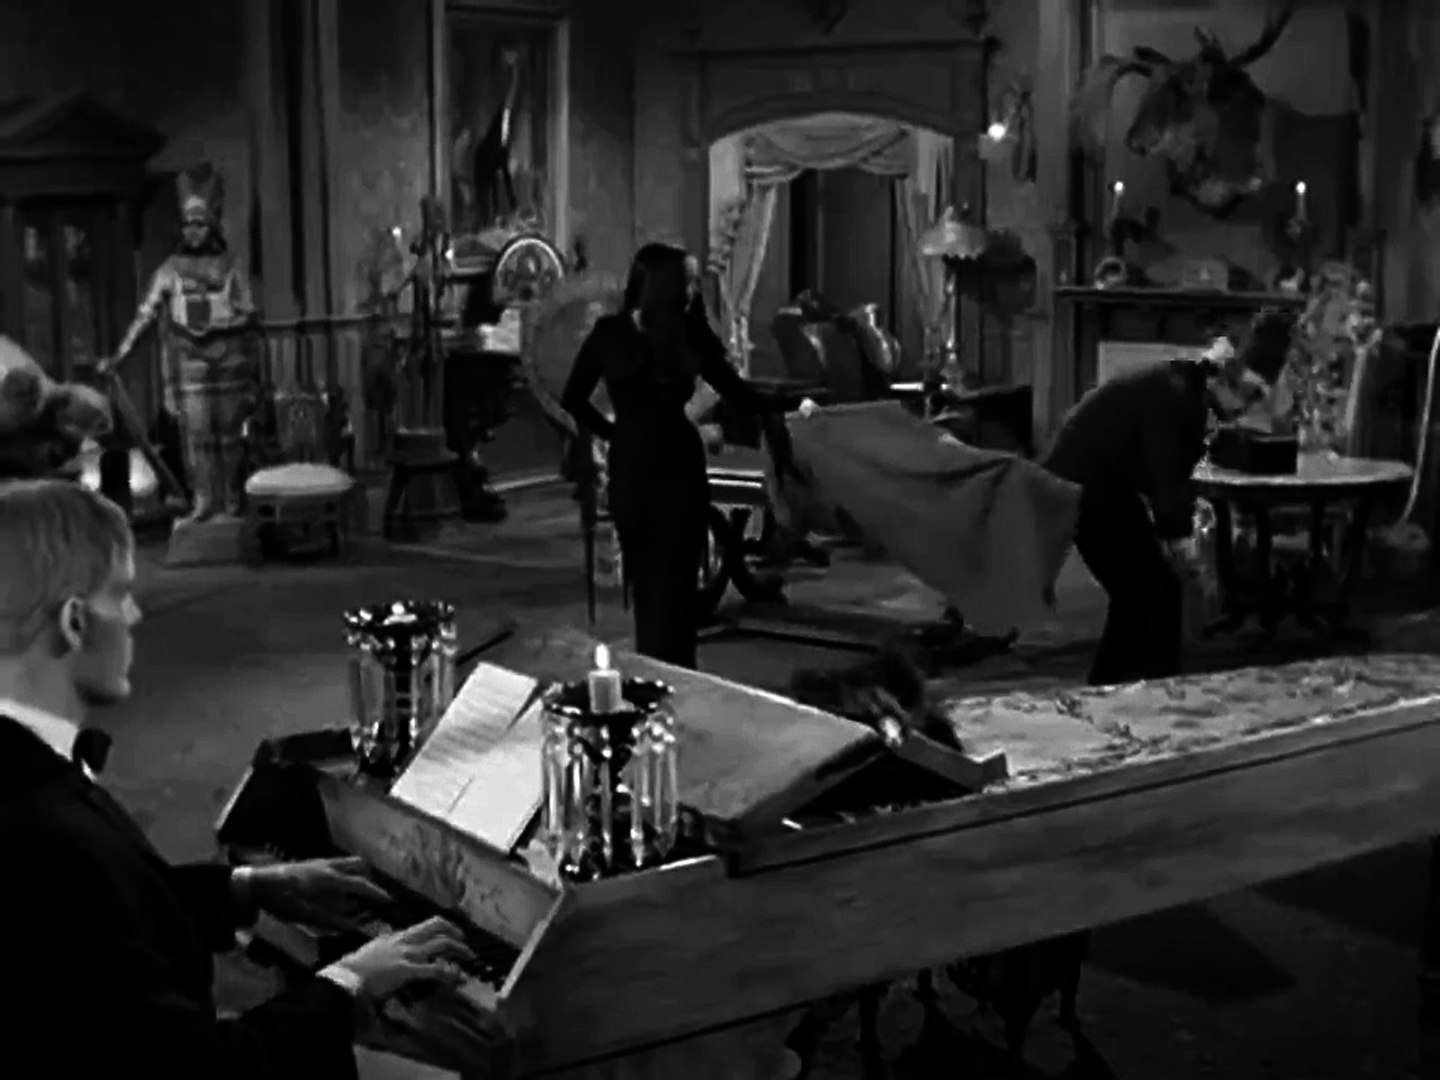 The Addams Family S01E19 - The Addams Family Splurges